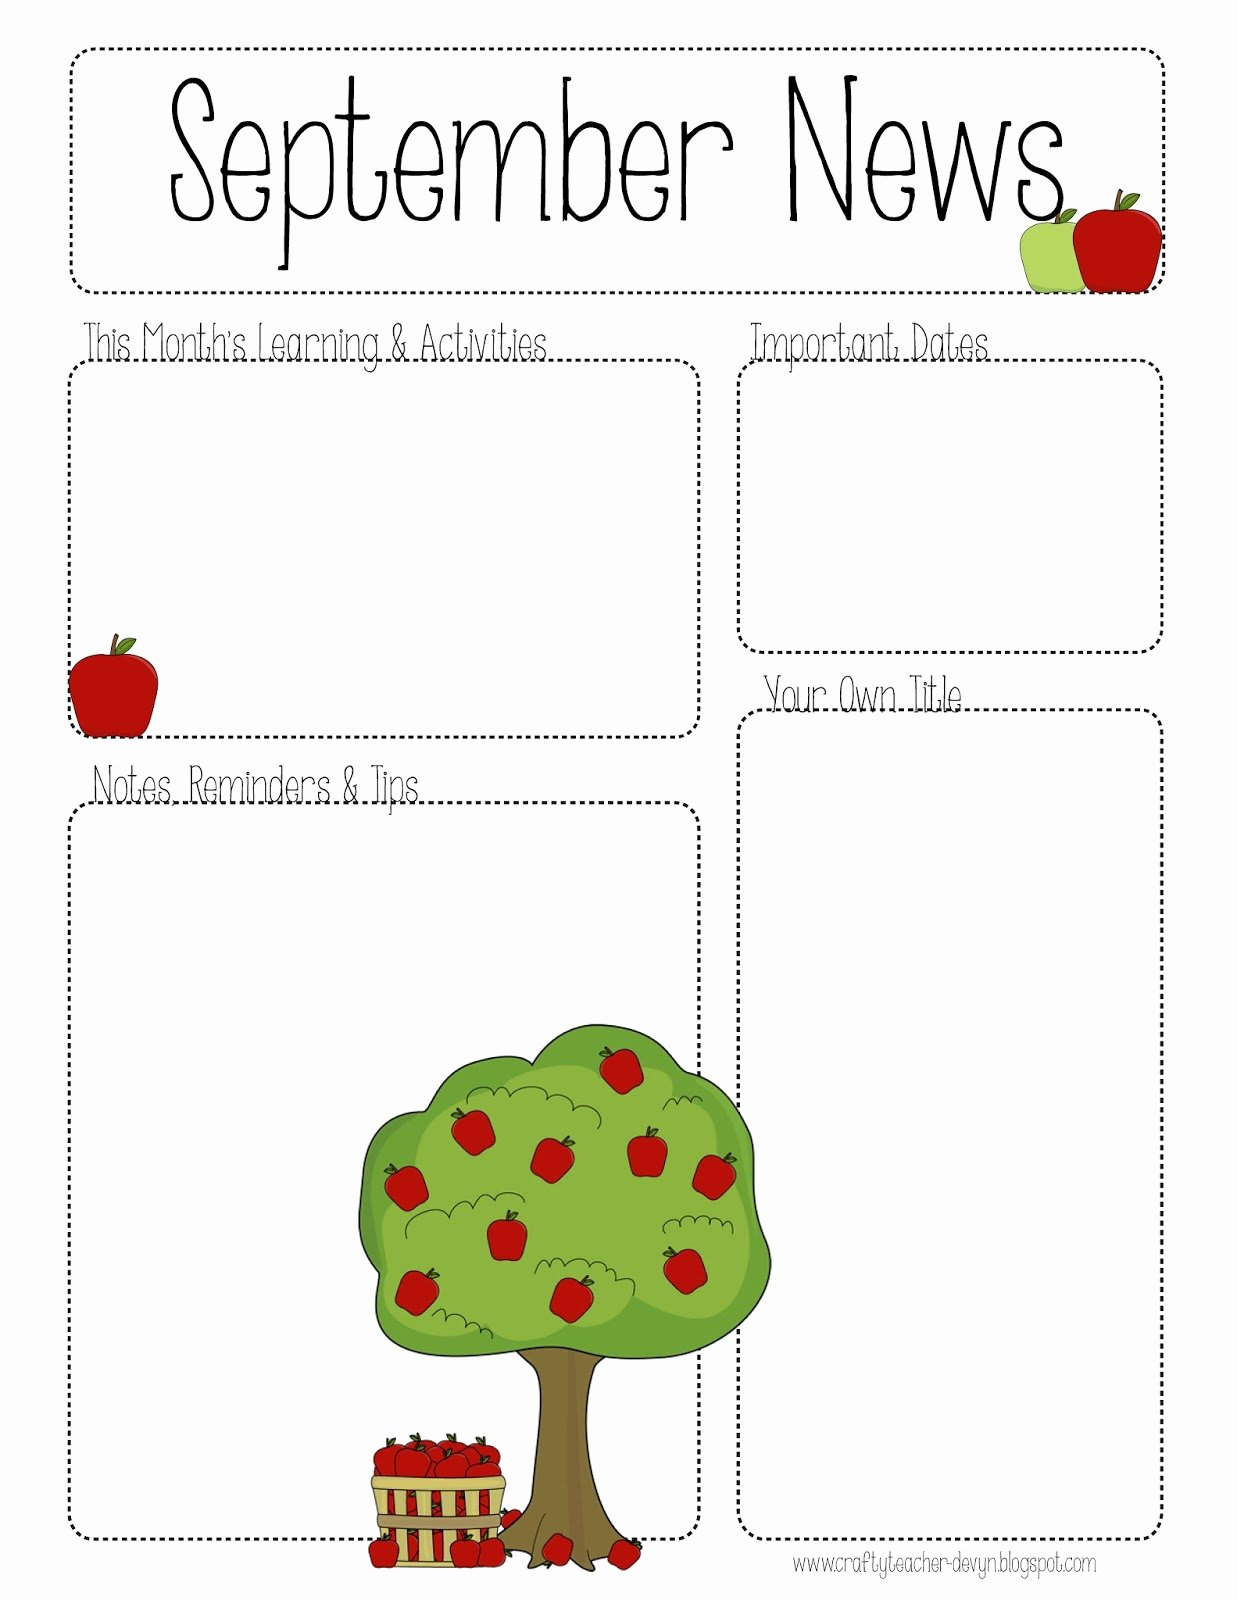 Preschool Newsletter Template Editable Fresh September Printable Newsletter All Grades